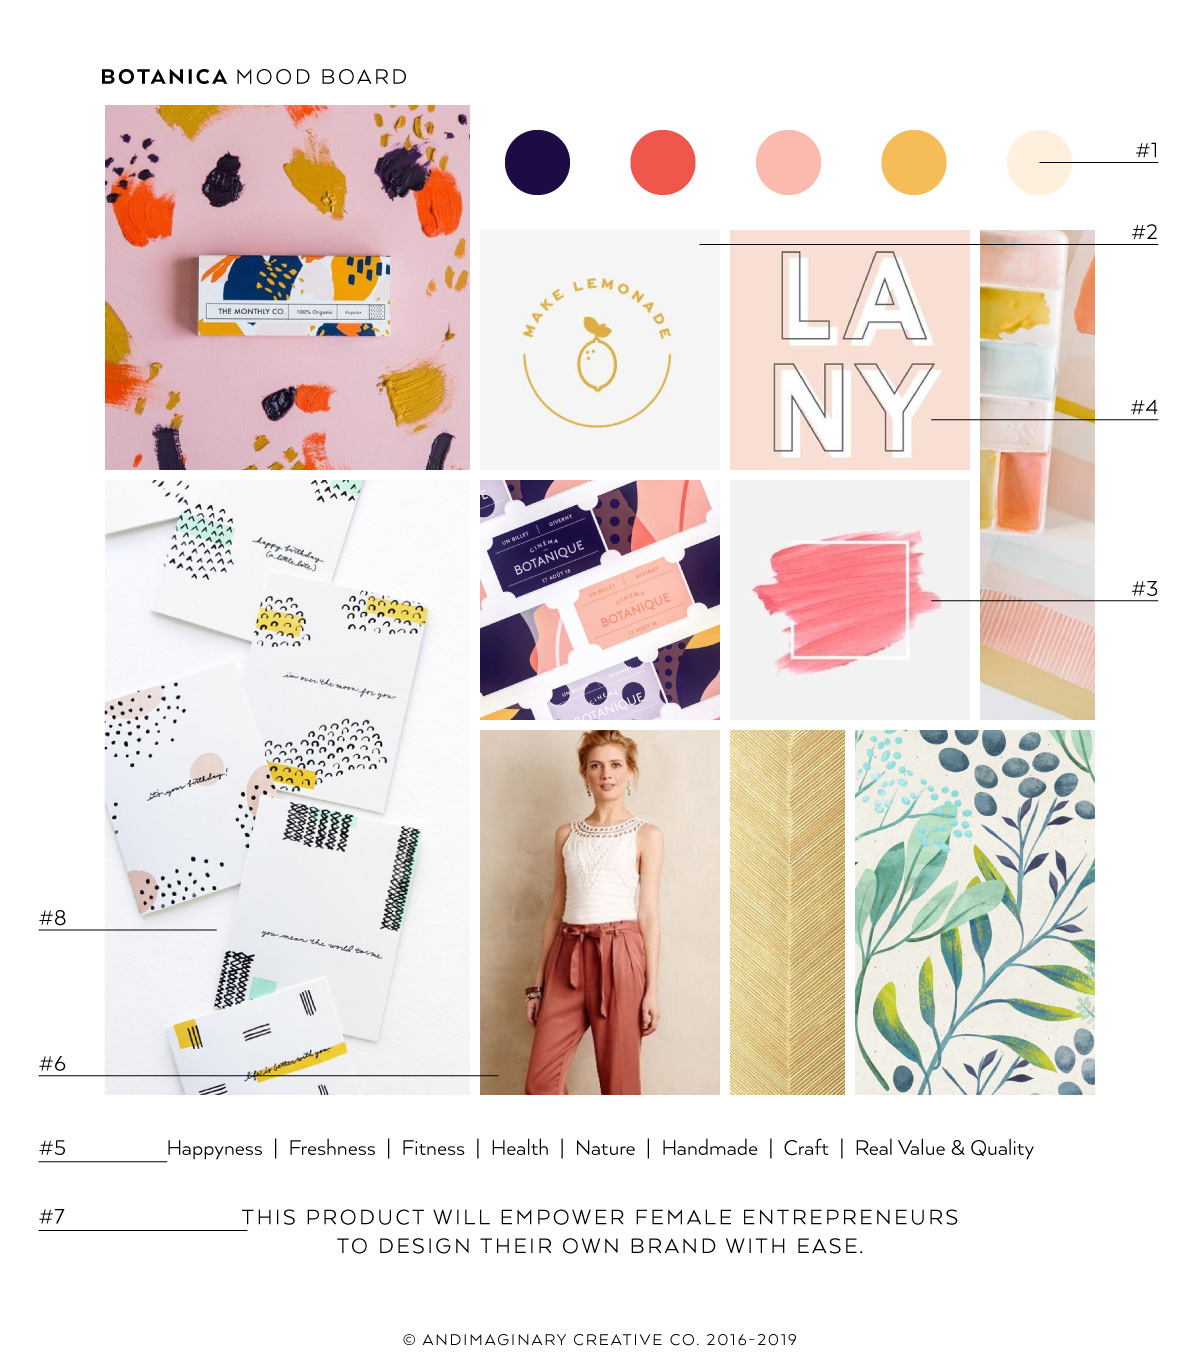 What to include on your brand mood board